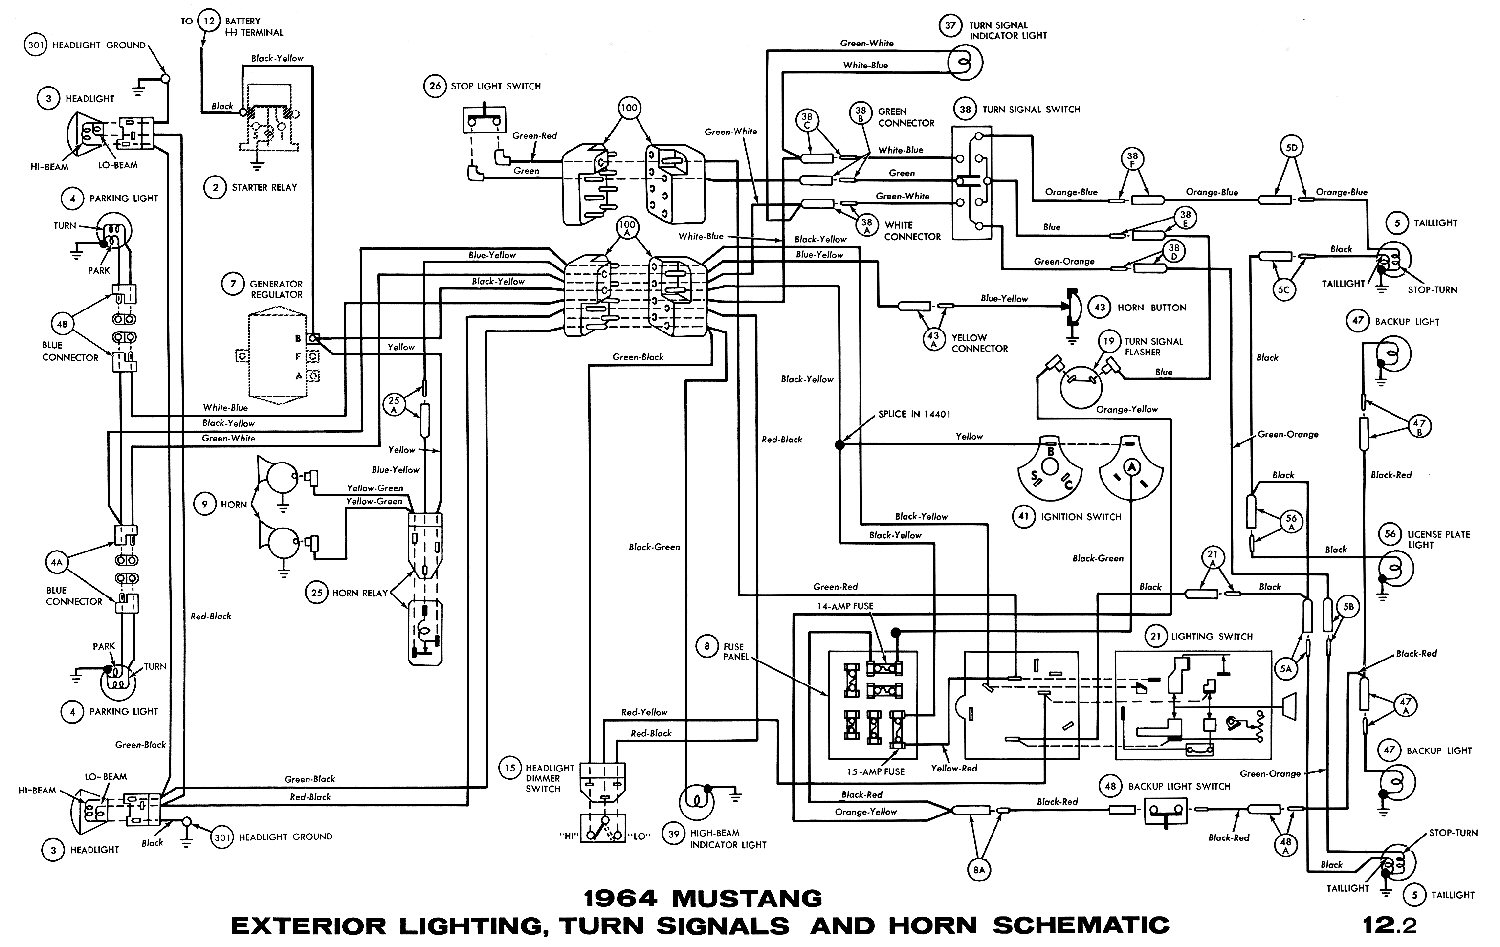 wrg 5660] cj5 turn signal wiring schematicturn signals and horns pictorial or schematic headlamps